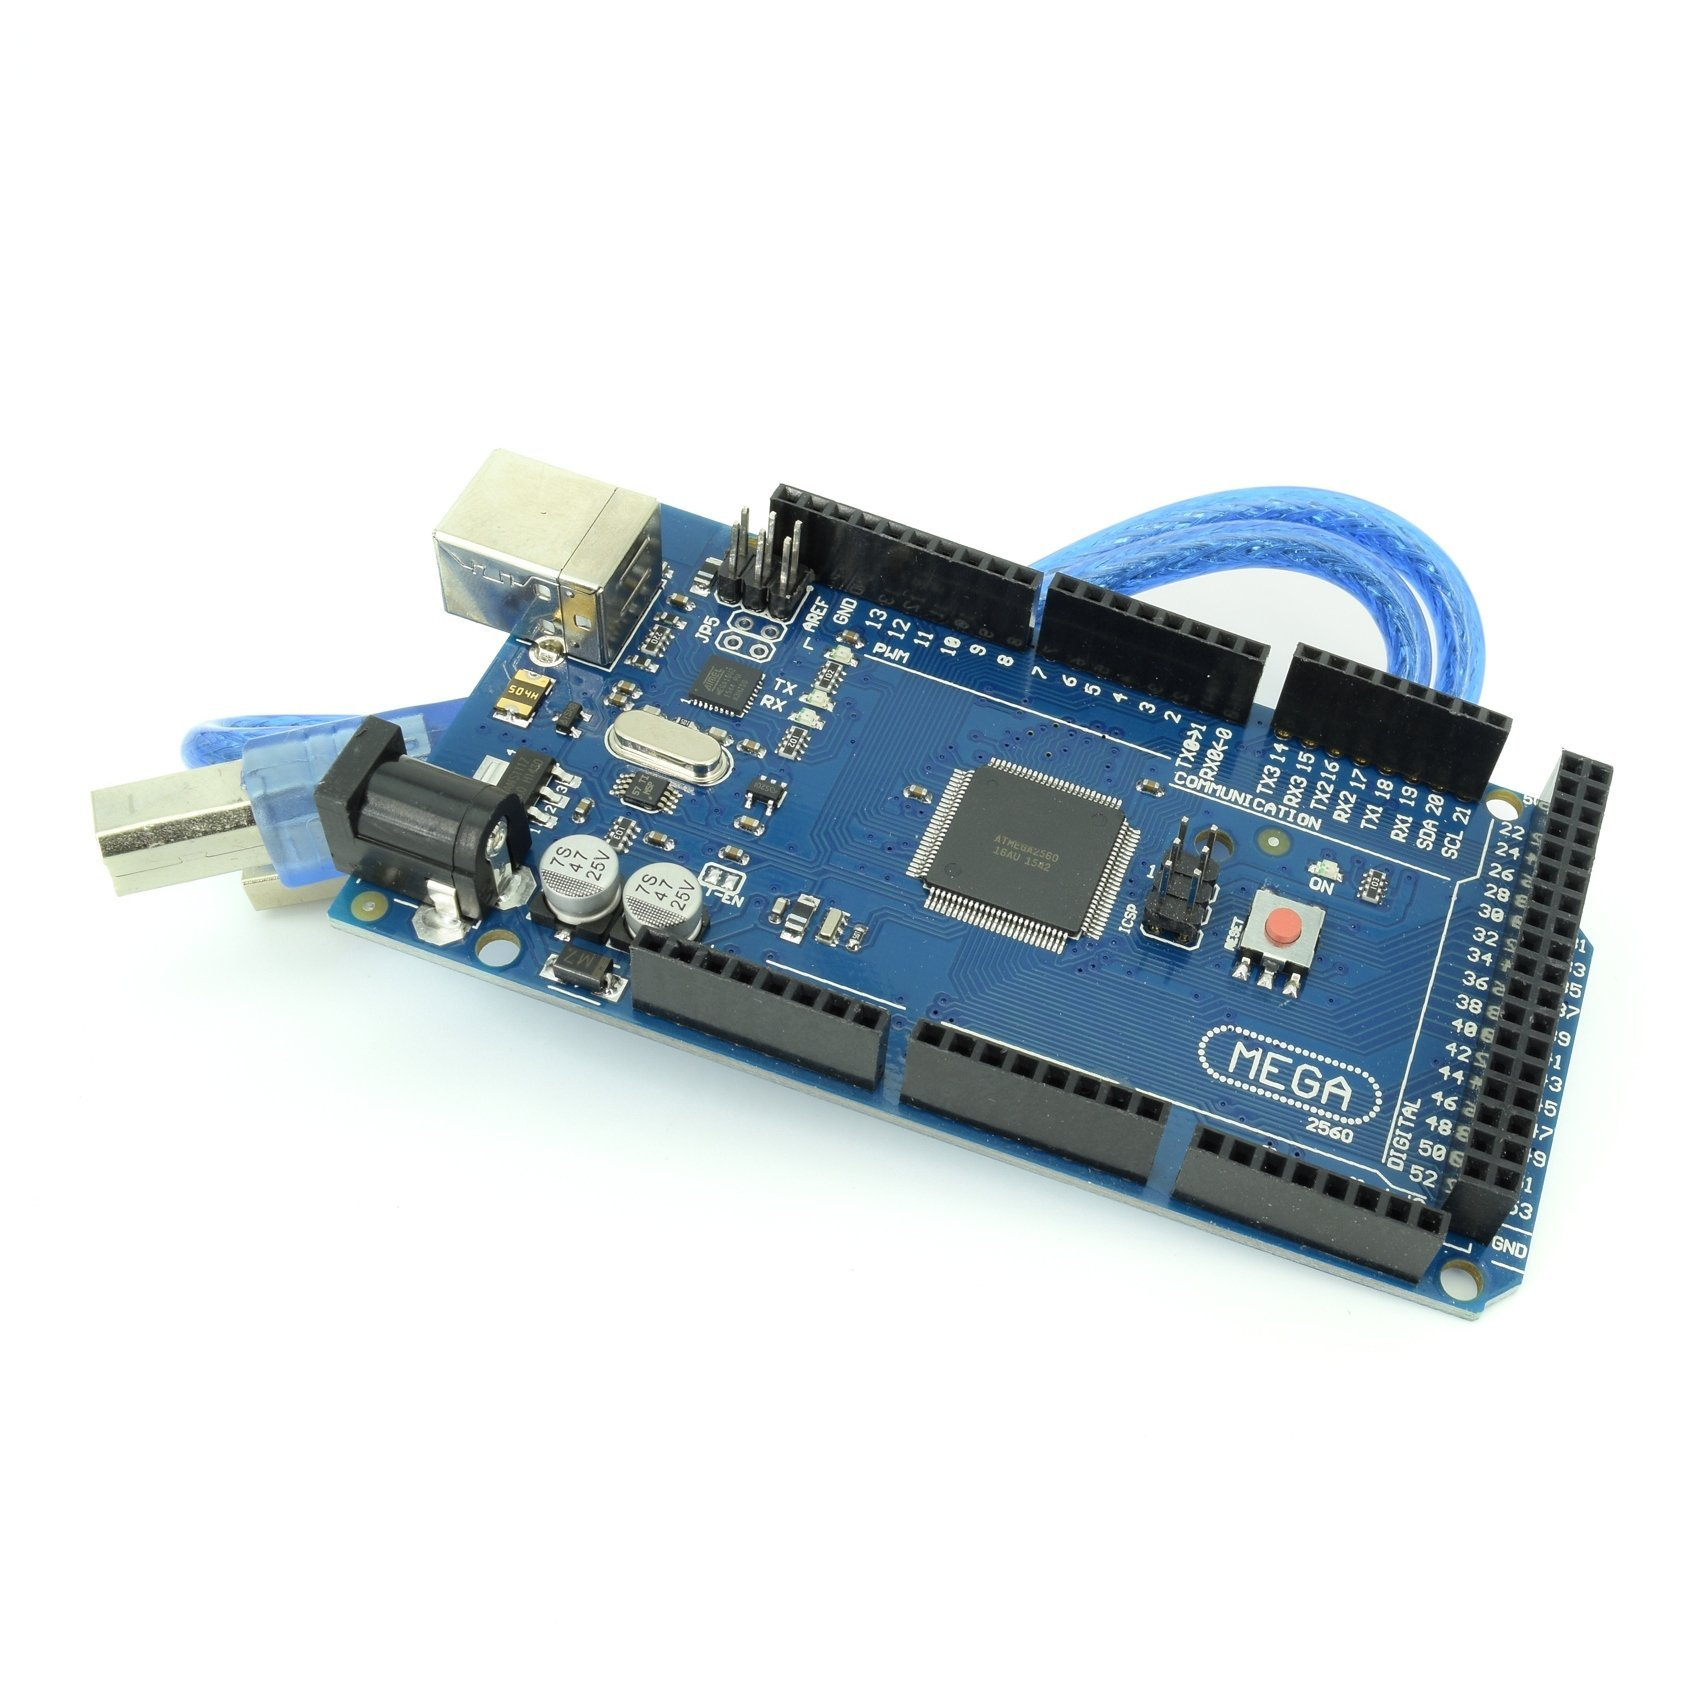 MEGA2560 Micro Controller Board with ATmega2560 and ATMega16U2 Development Board Arduino Mega2560 Compatible with USB Cable from Optimus Electric Pack of 10